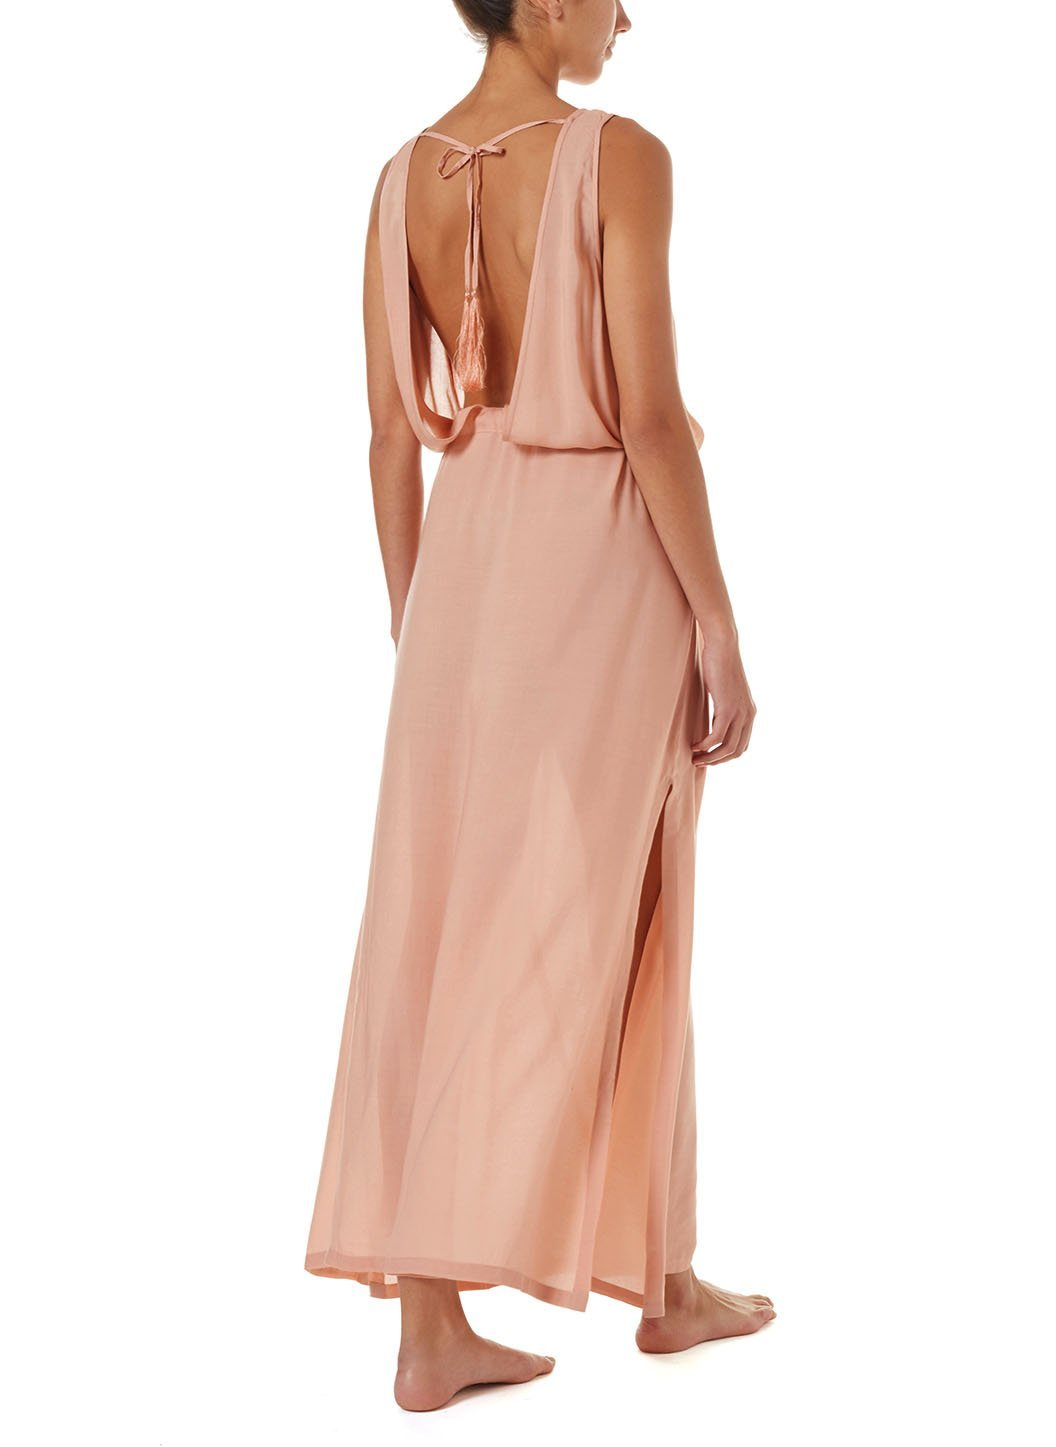 jacquie tan laceup belted maxi dress 2019 B